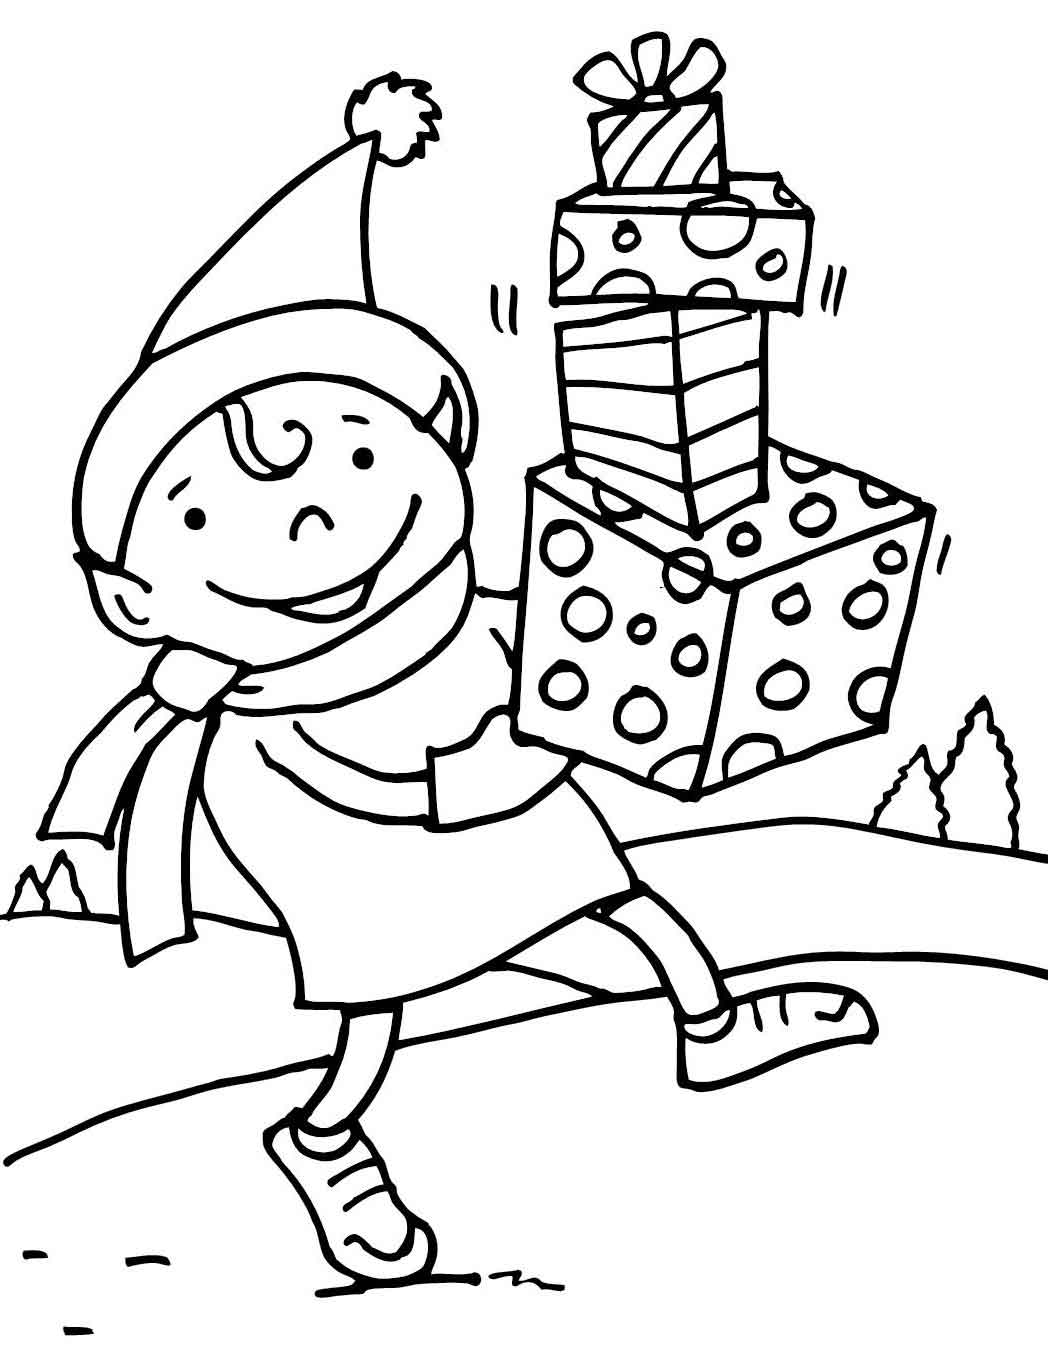 coloring pages elves 30 free printable elf on the shelf coloring pages coloring pages elves